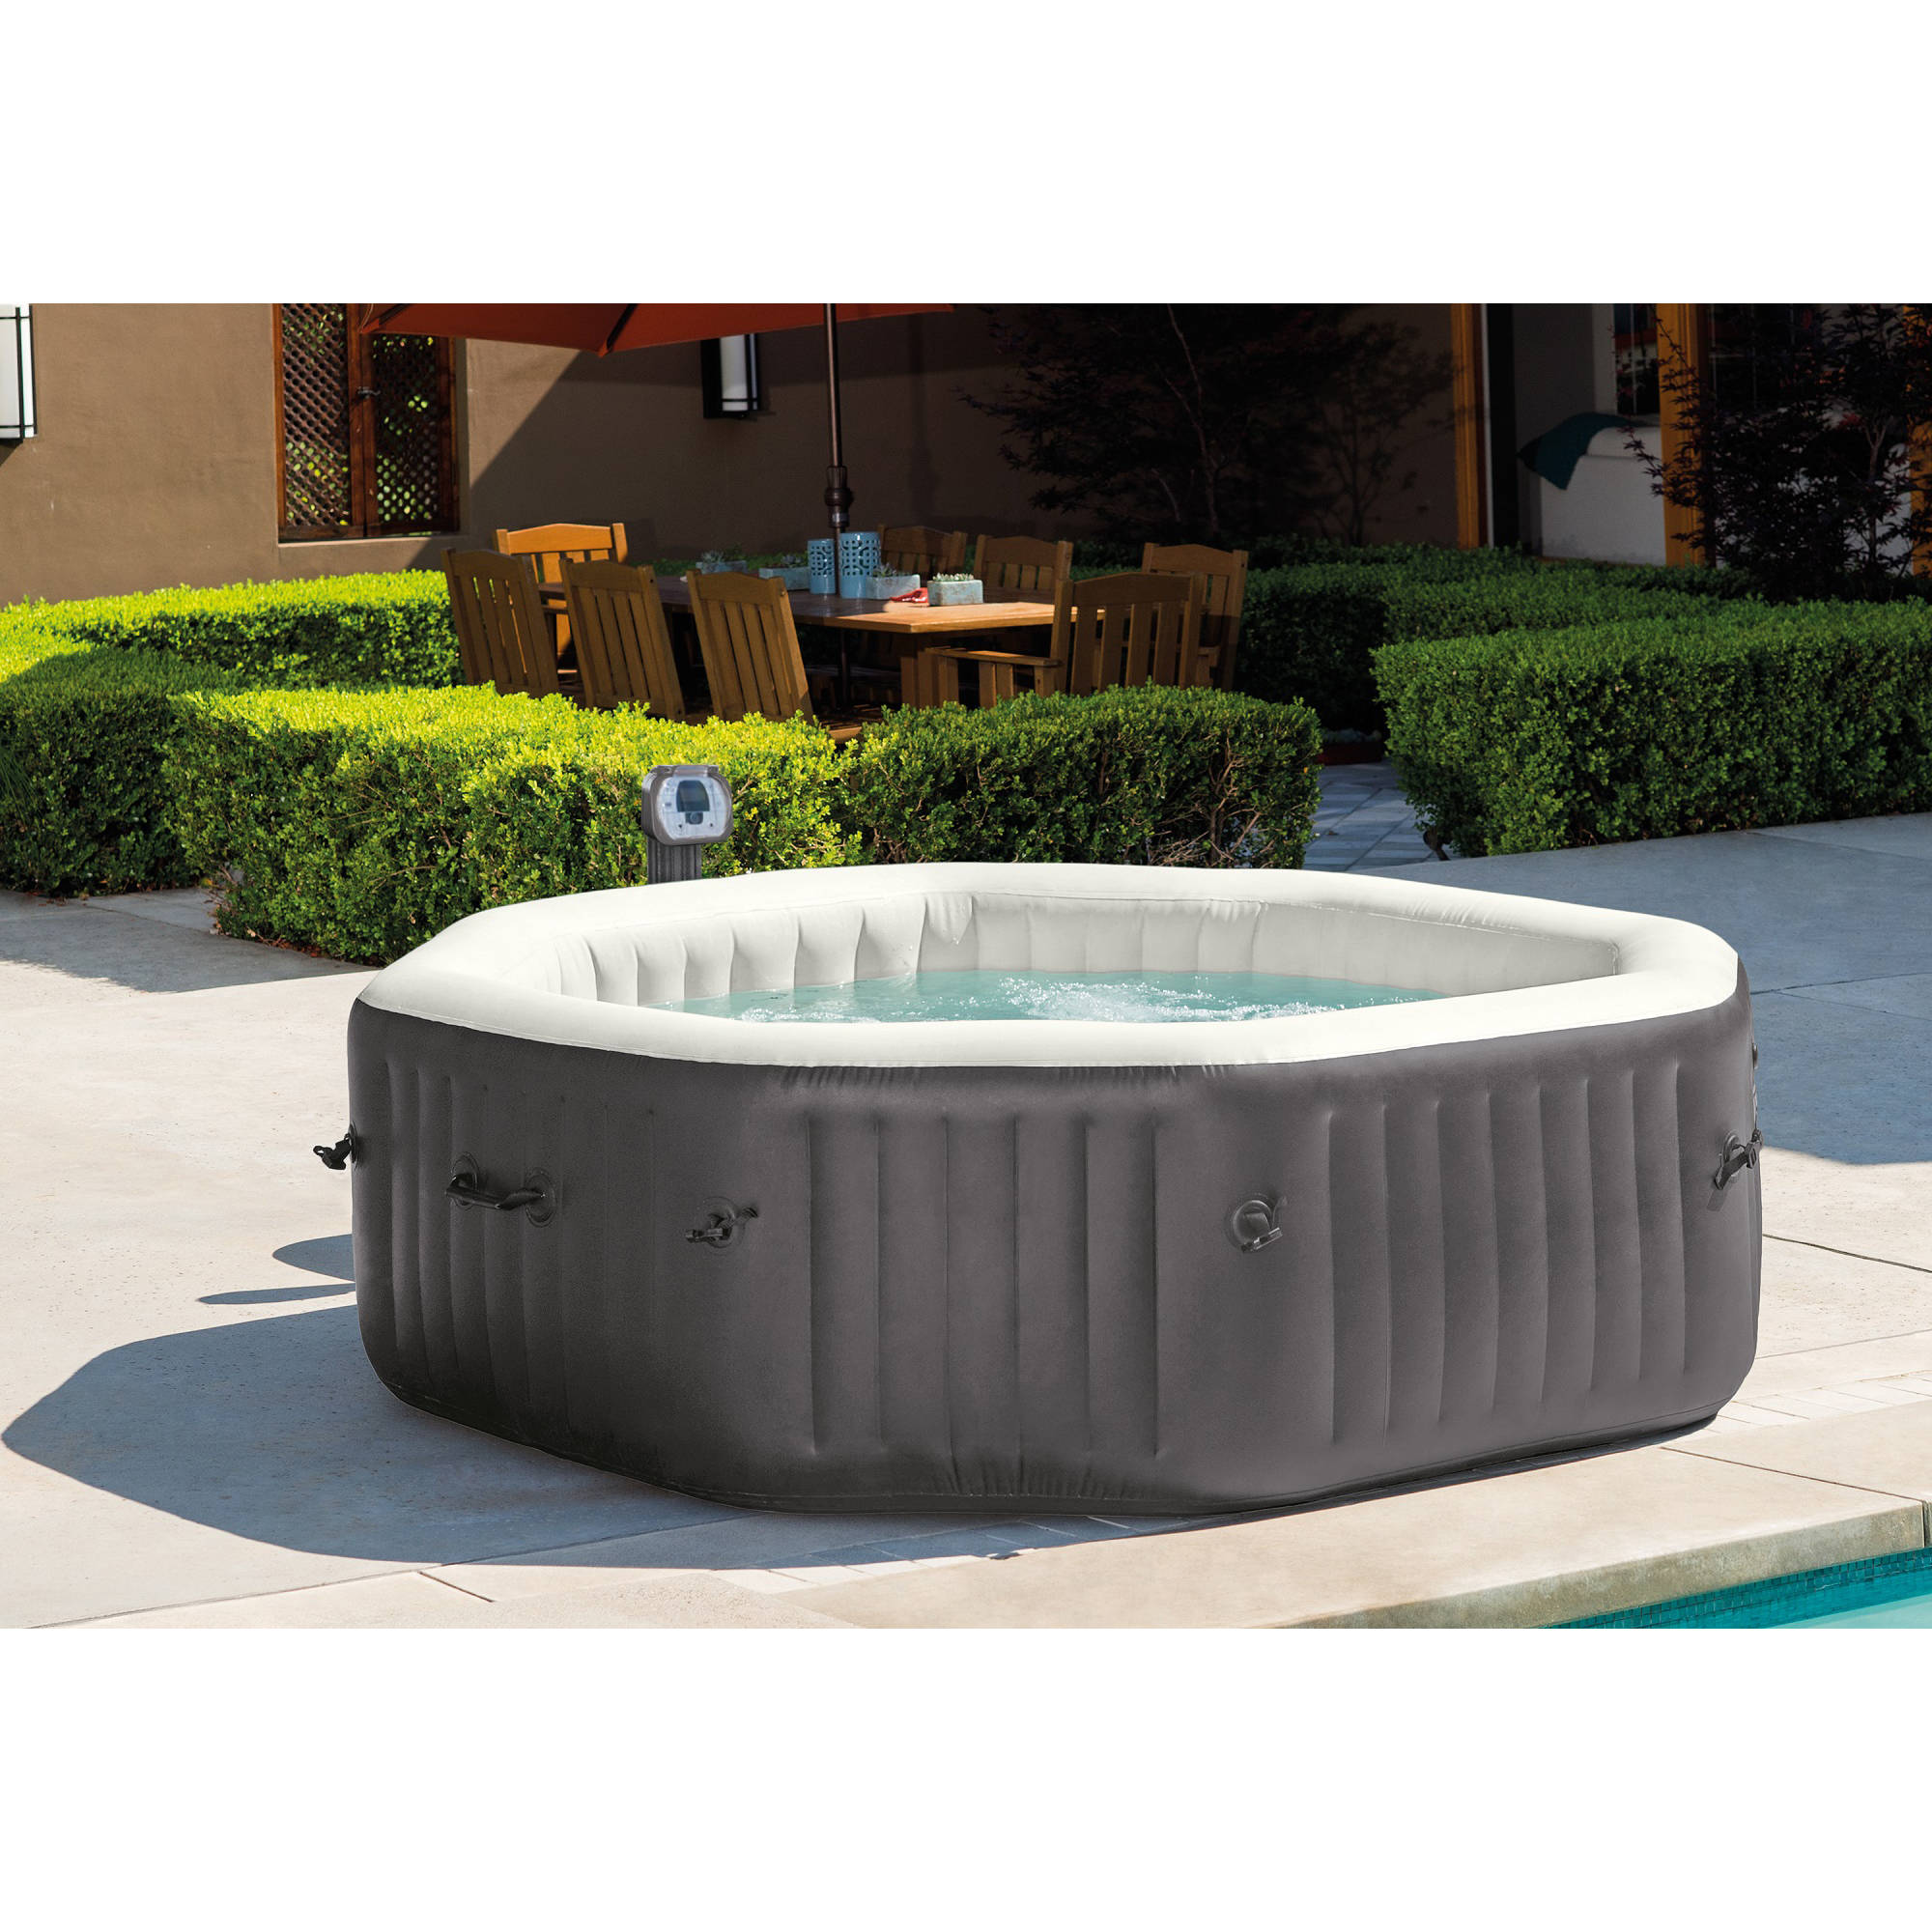 Coleman SaluSpa 4 Person Portable Inflatable Outdoor Spa Hot Tub, Black -  Walmart.com